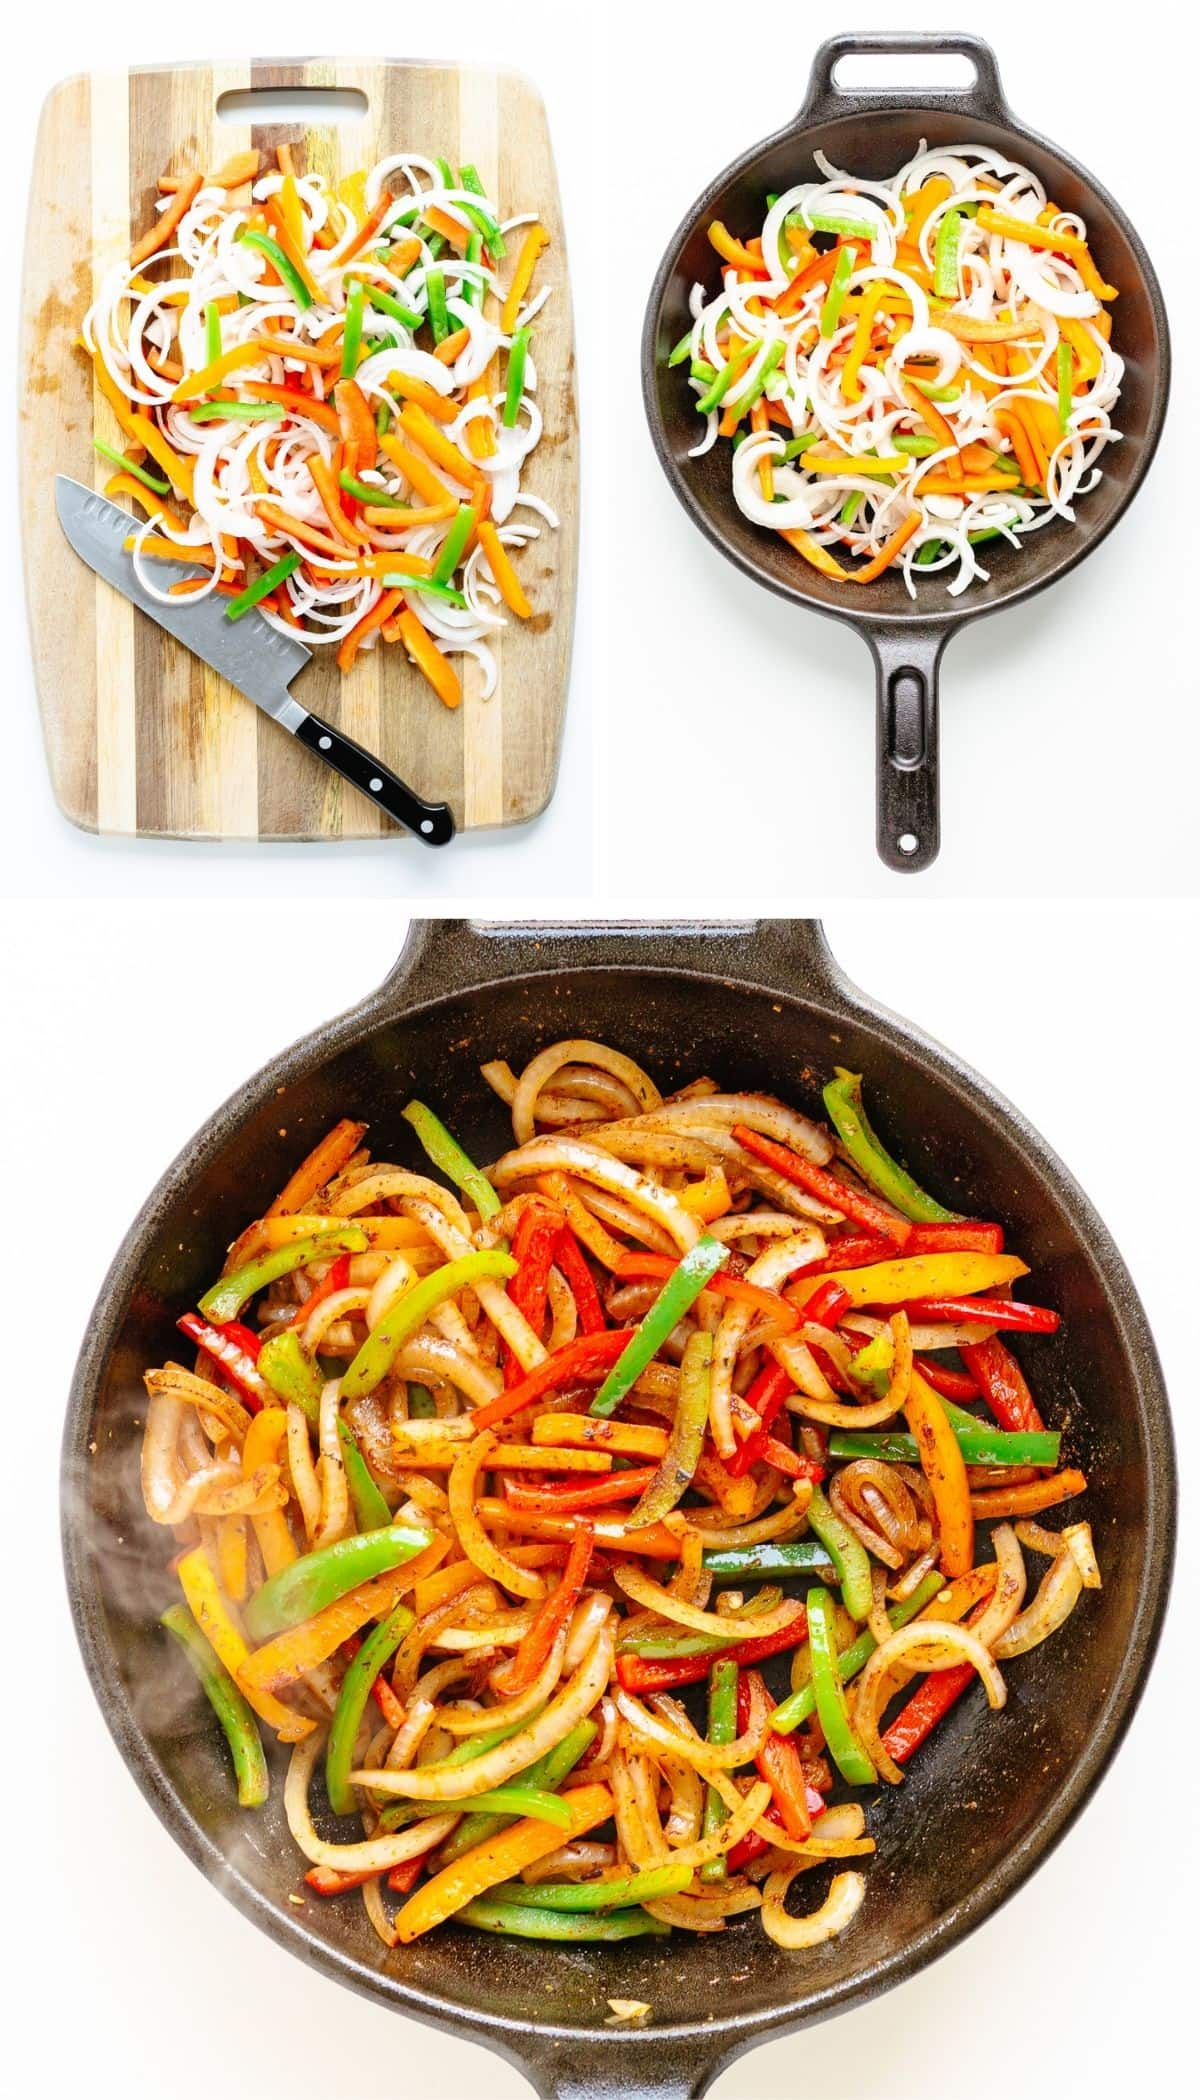 Collage of photos showing fajita veggies being made from sliced peppers and onions on a chopping board to being sautéed in a cast iron skillet.